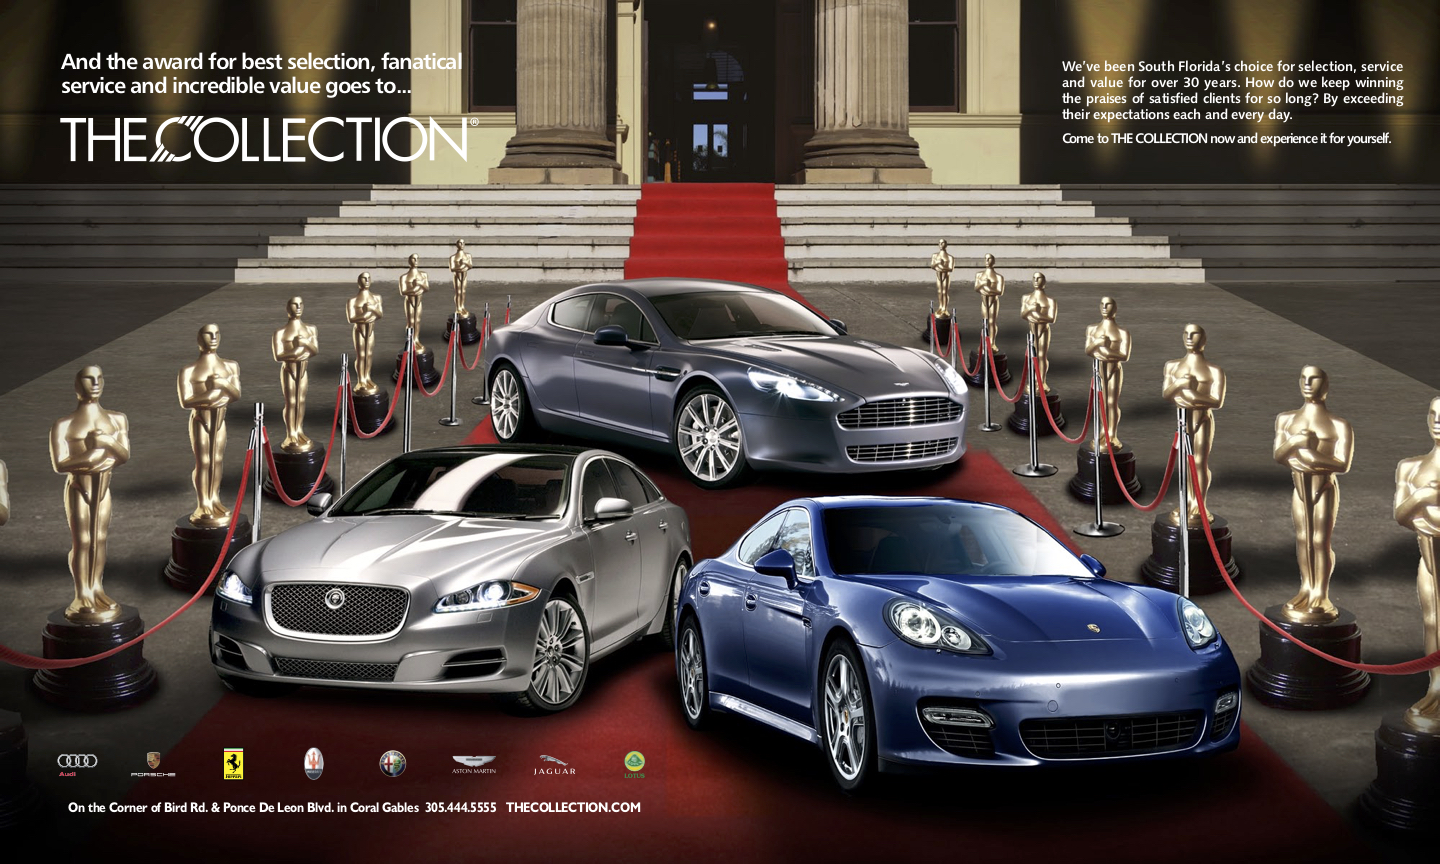 Academy Awards Ad Campaign